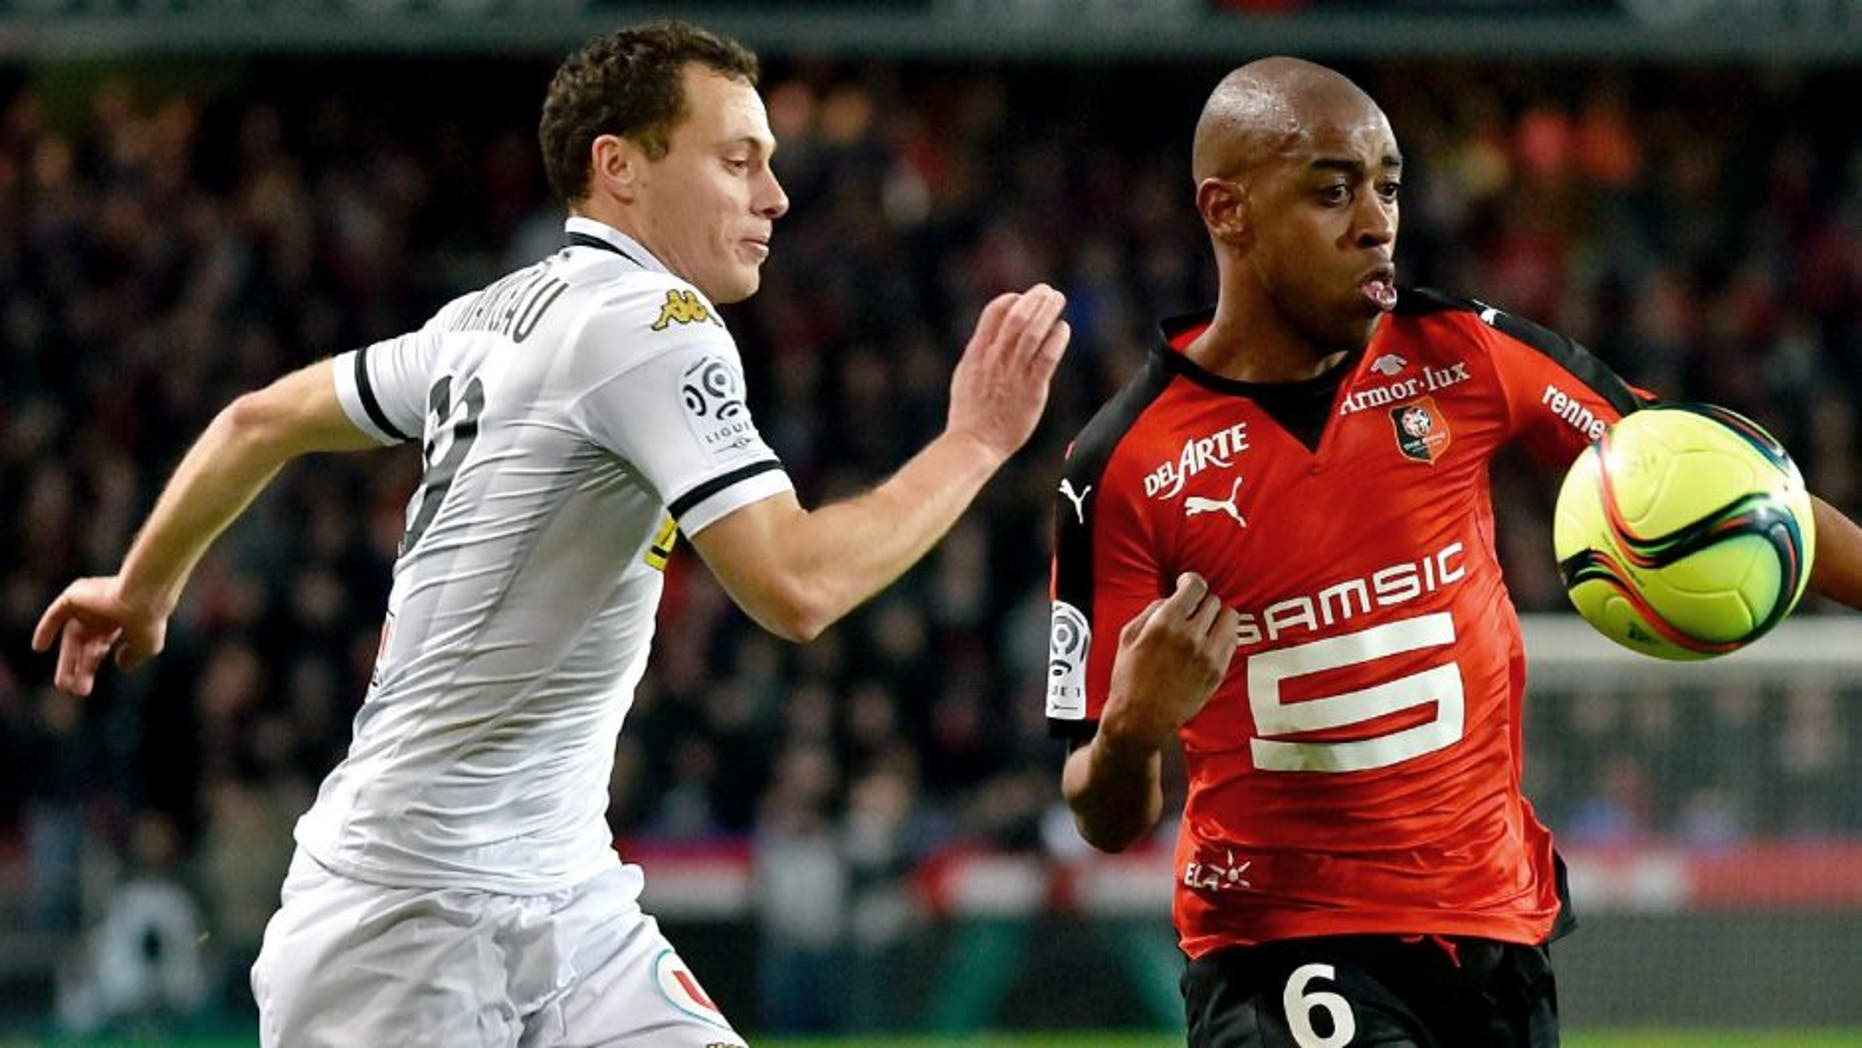 Angers' French midfielder Vincent Manceau (L) fights for the ball with Rennes' Cape Verdean midfielder Gelson Fernandes (R) during the French L1 football match Rennes vs Angers at the Roazhon Park stadium on February 12, 2016 in Rennes, western France. AFP PHOTO / LOIC VENANCE / AFP / LOIC VENANCE (Photo credit should read LOIC VENANCE/AFP/Getty Images)